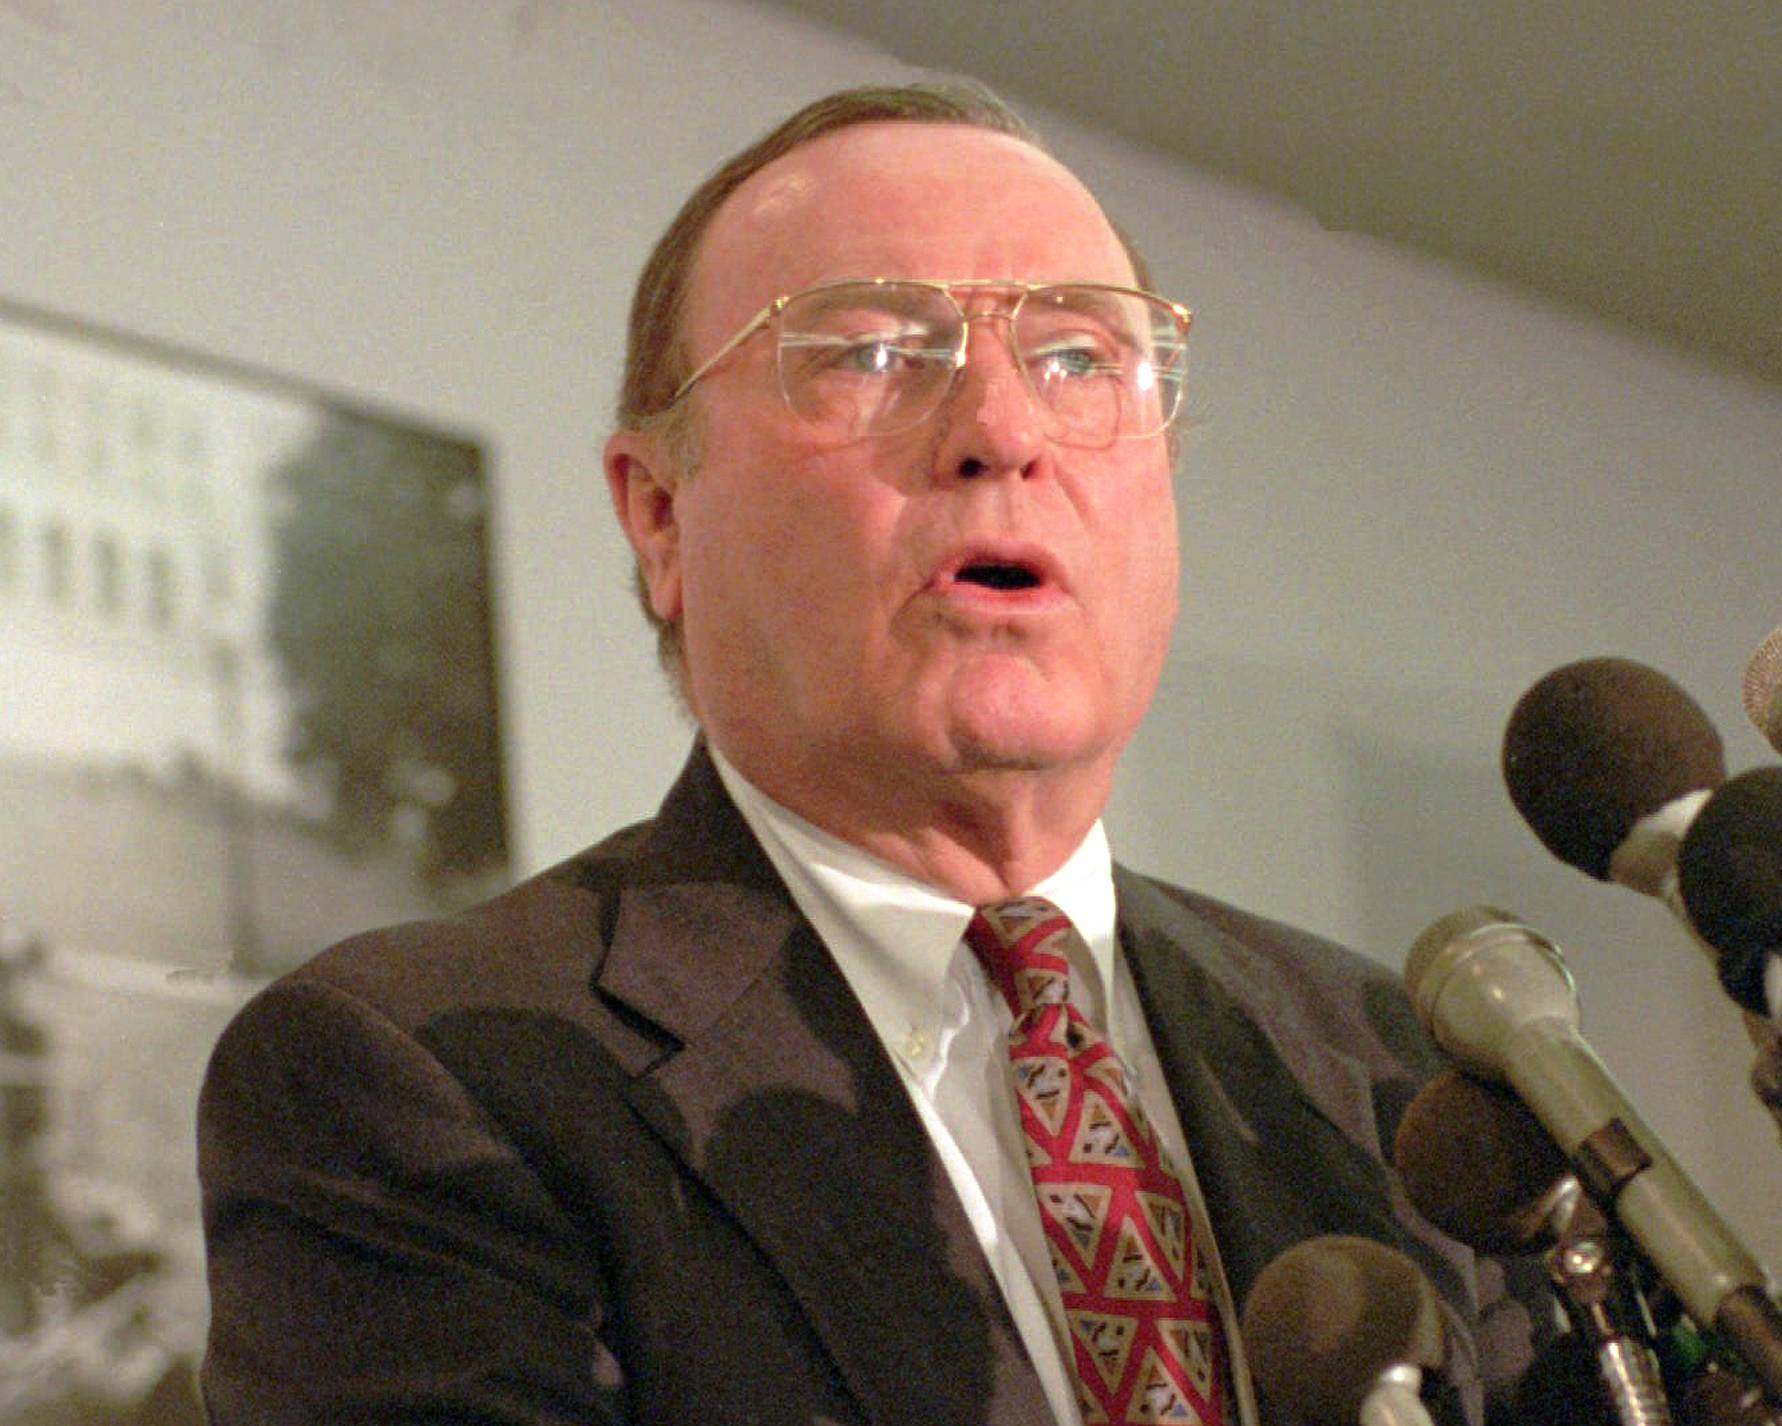 AP Photo Former Democratic U.S. Sen. Alan Dixon died Sunday at his home in Fairview Heights. He is shown here in 1995.